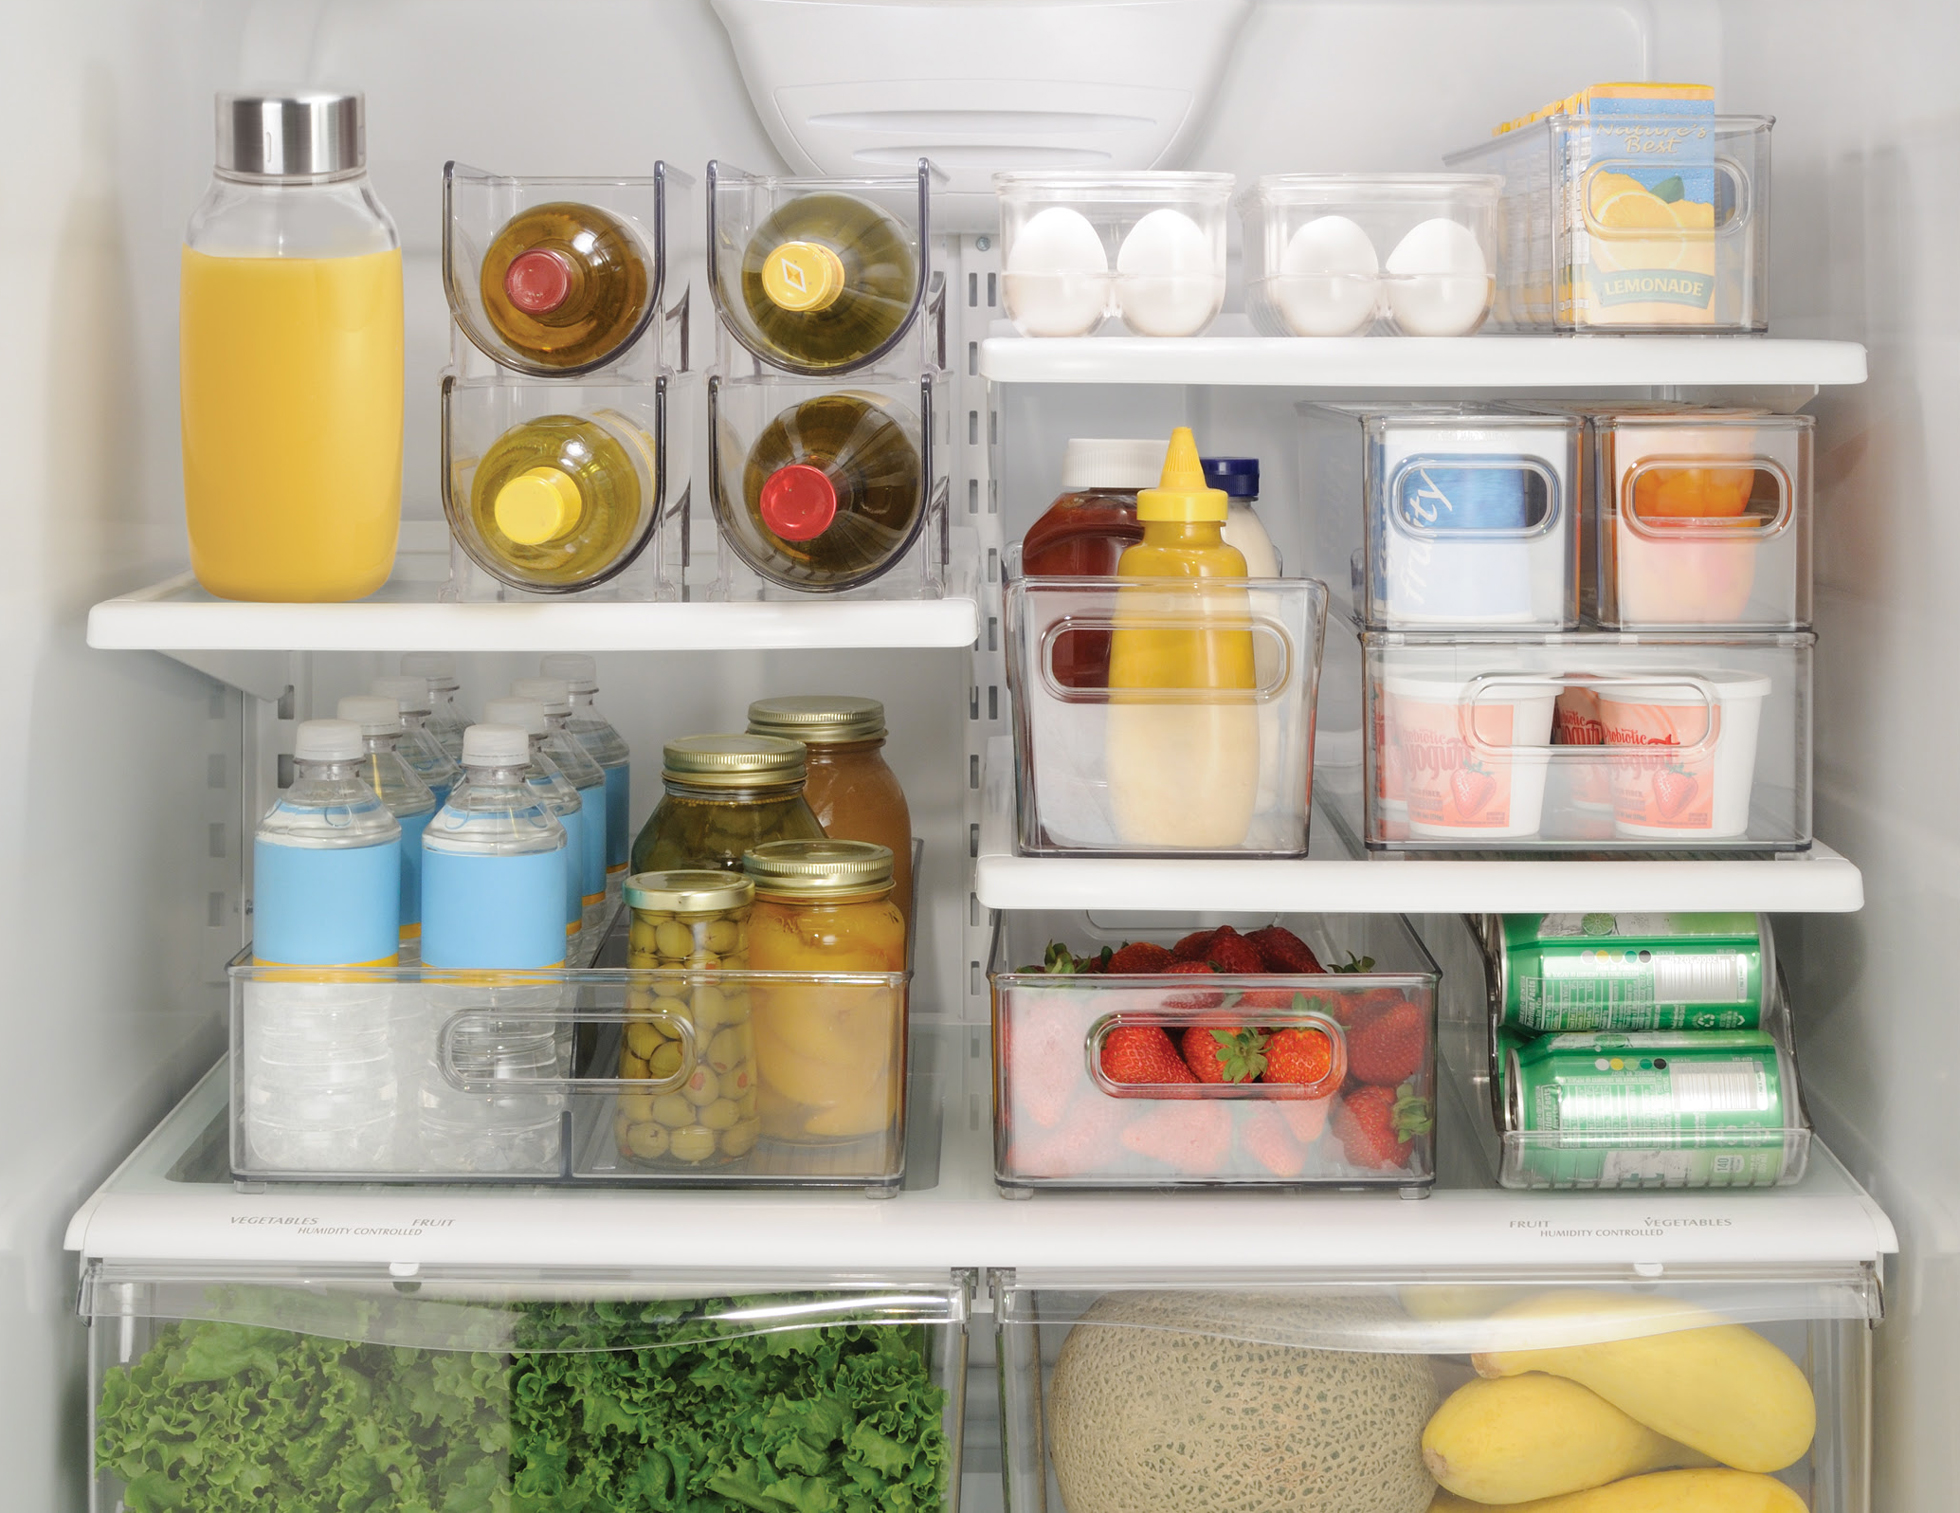 Clear organizers in a refrigerator